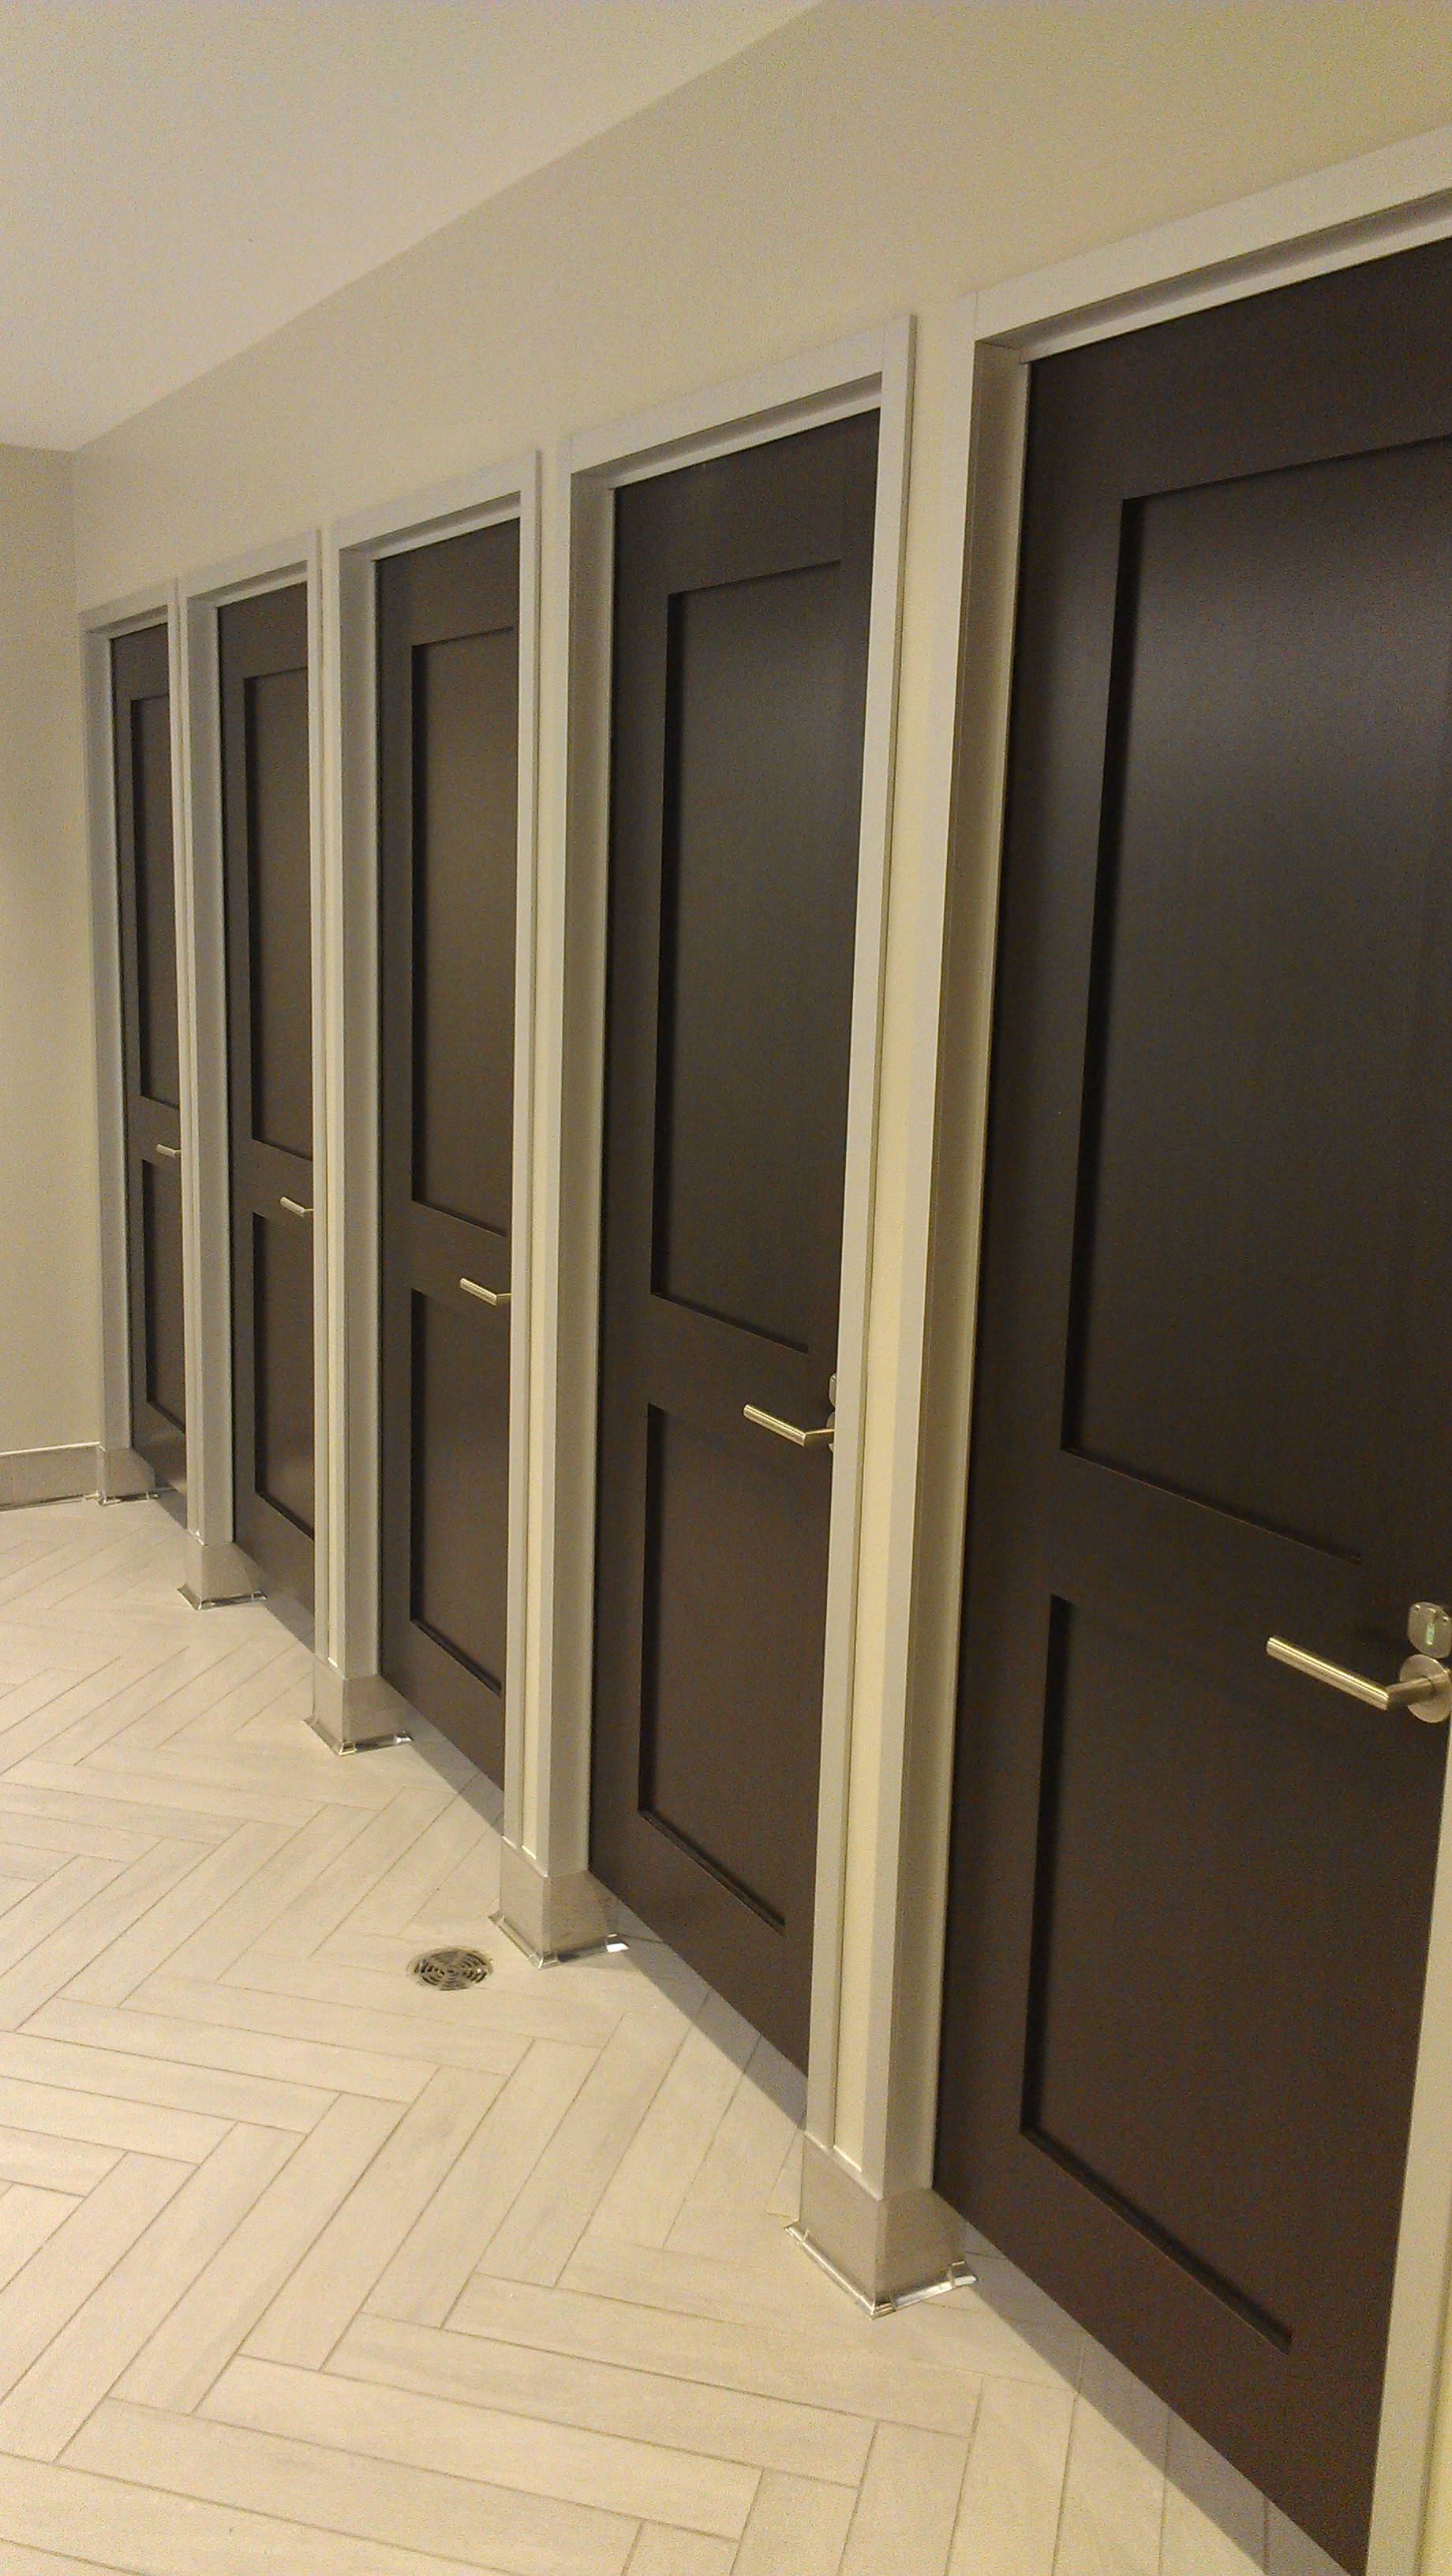 Restaurant Bathroom Door Handlesironwood manufacturing toilet compartments restroom partitions